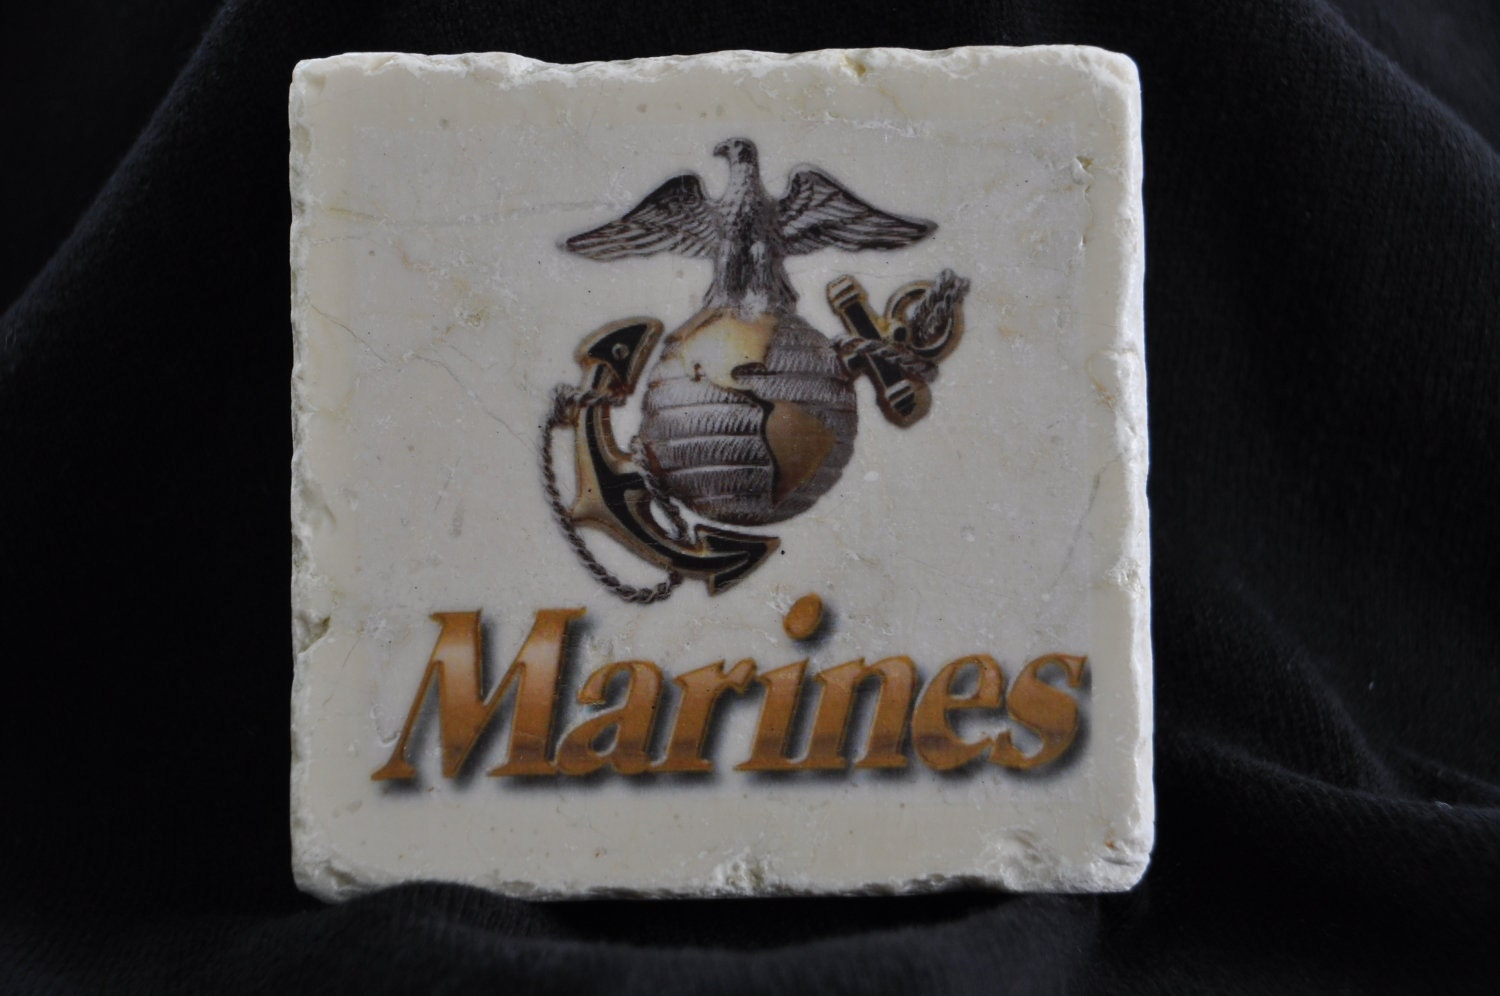 United States Marines Coasters Set of 4 Handcrafted